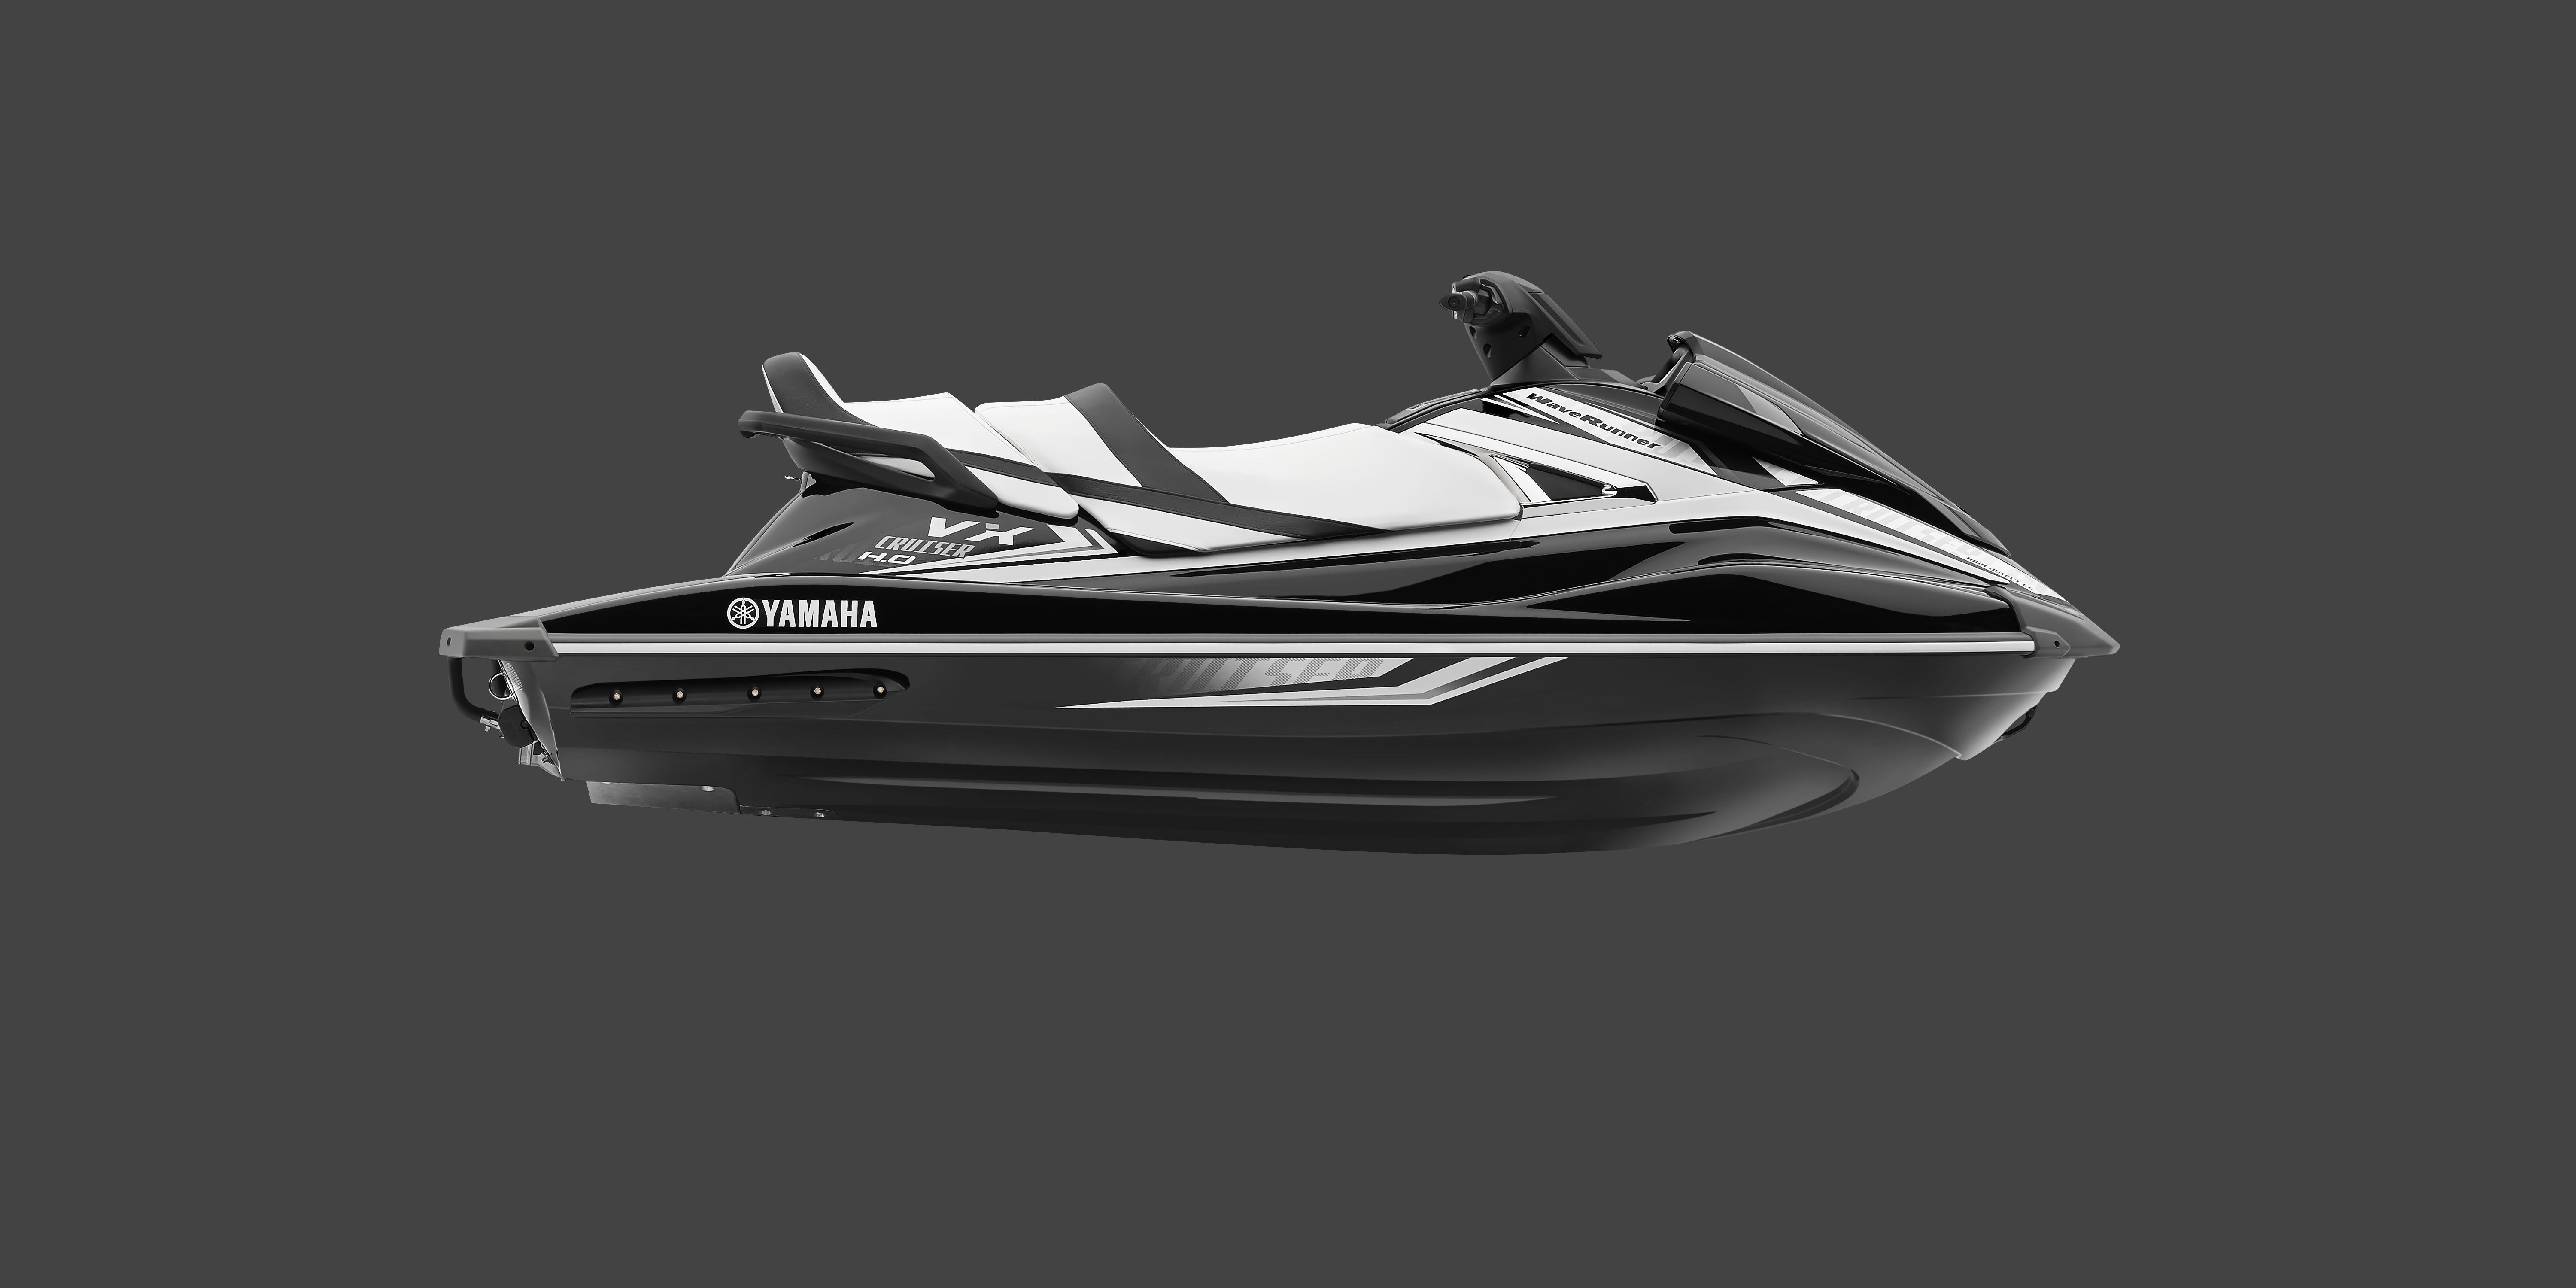 Yamaha Introduces Its 2016 Waverunners With All New Vx Models And Tr 1 Ho Marine Engine Pro Rider Watercraft Magazine